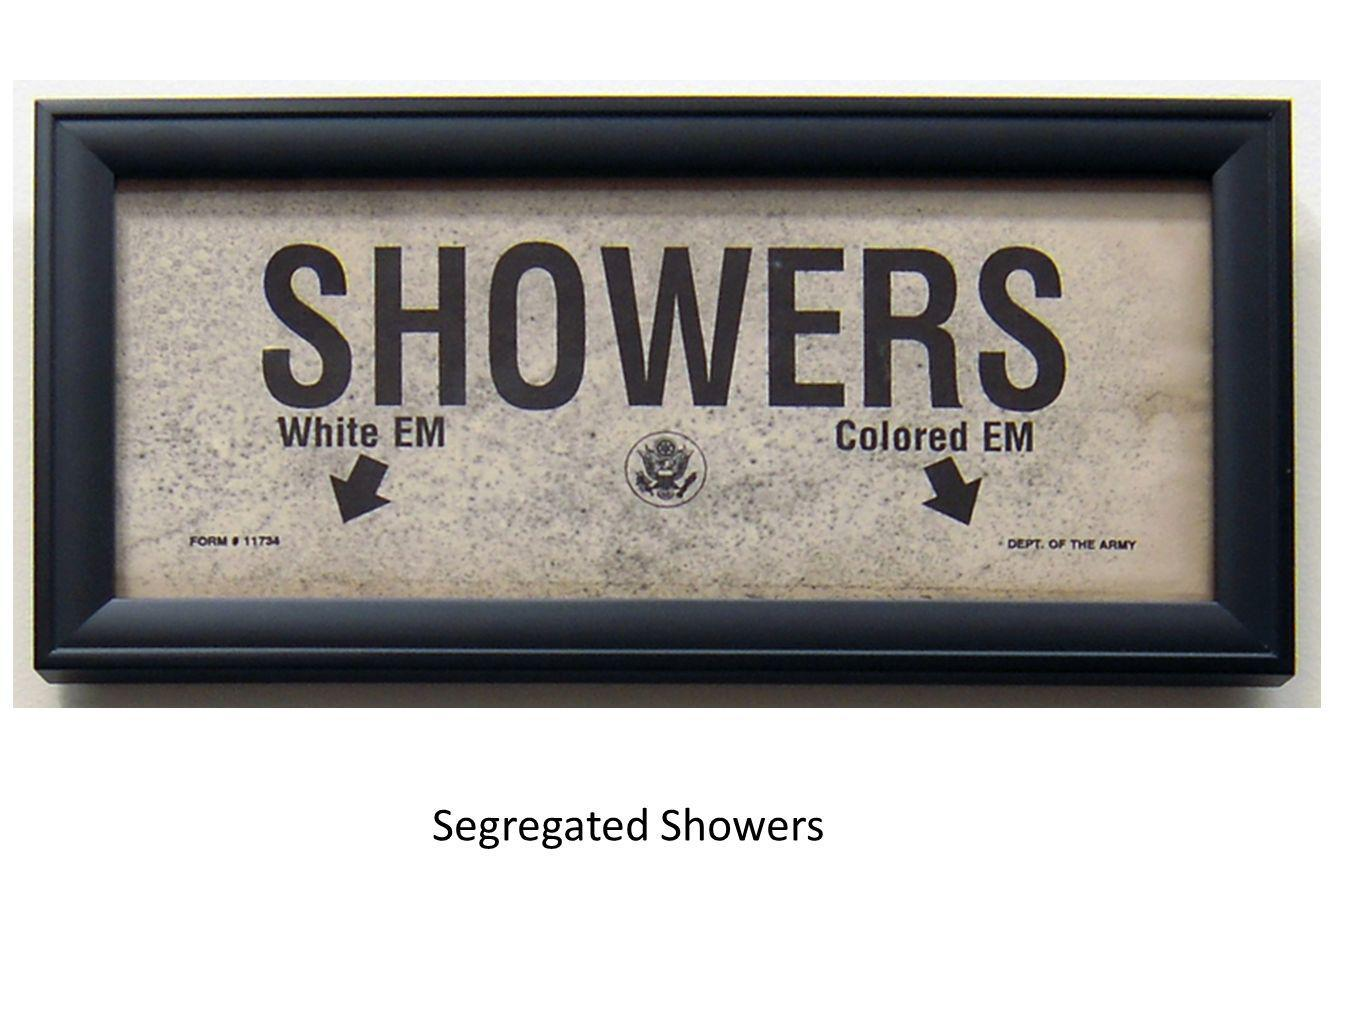 Segregated Showers